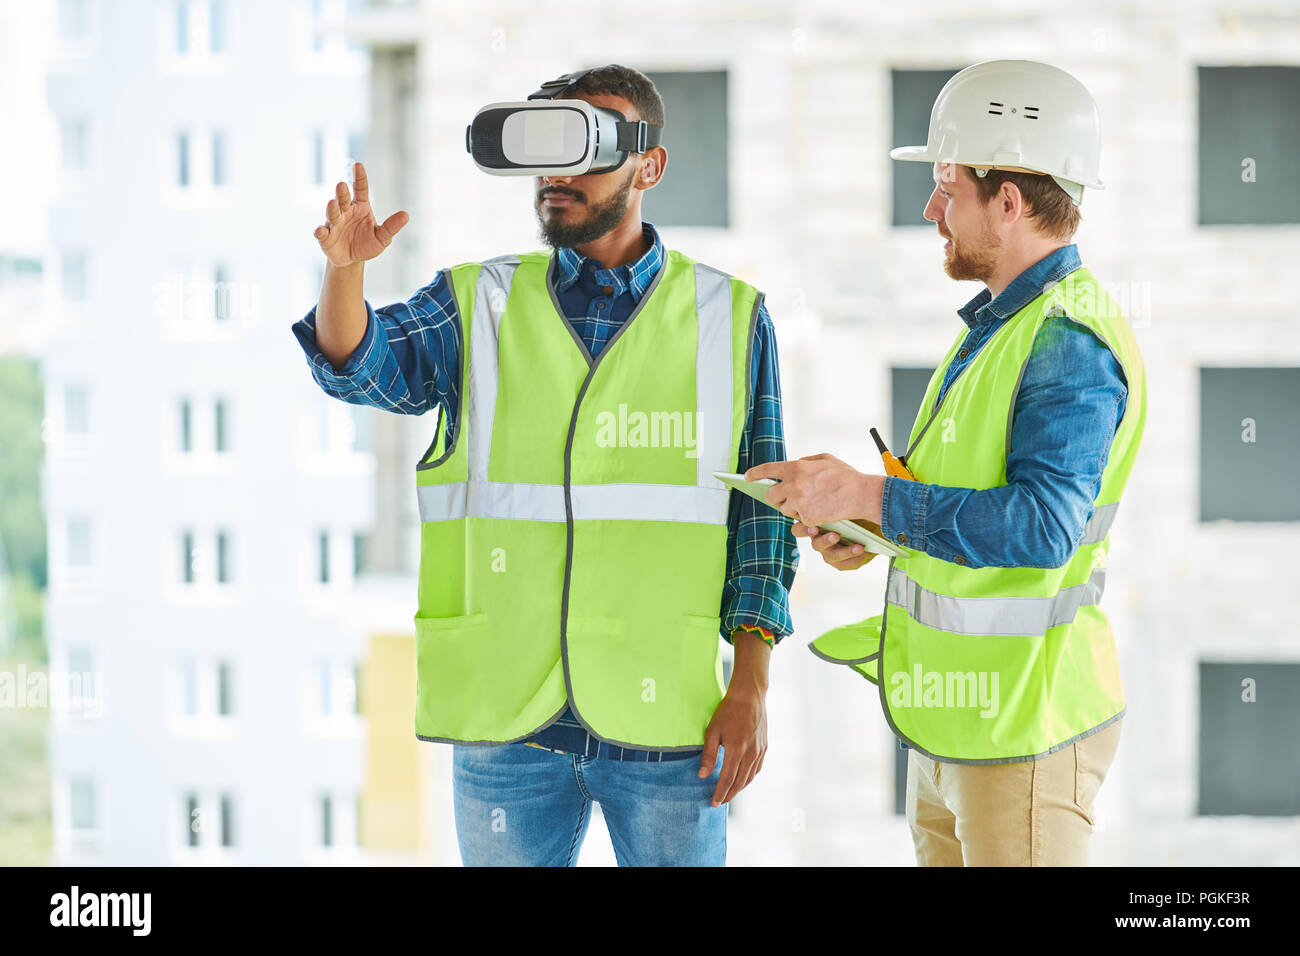 Waist up portrait of two modern construction workers using VR gear to visualize projects  on site, copy space - Stock Image